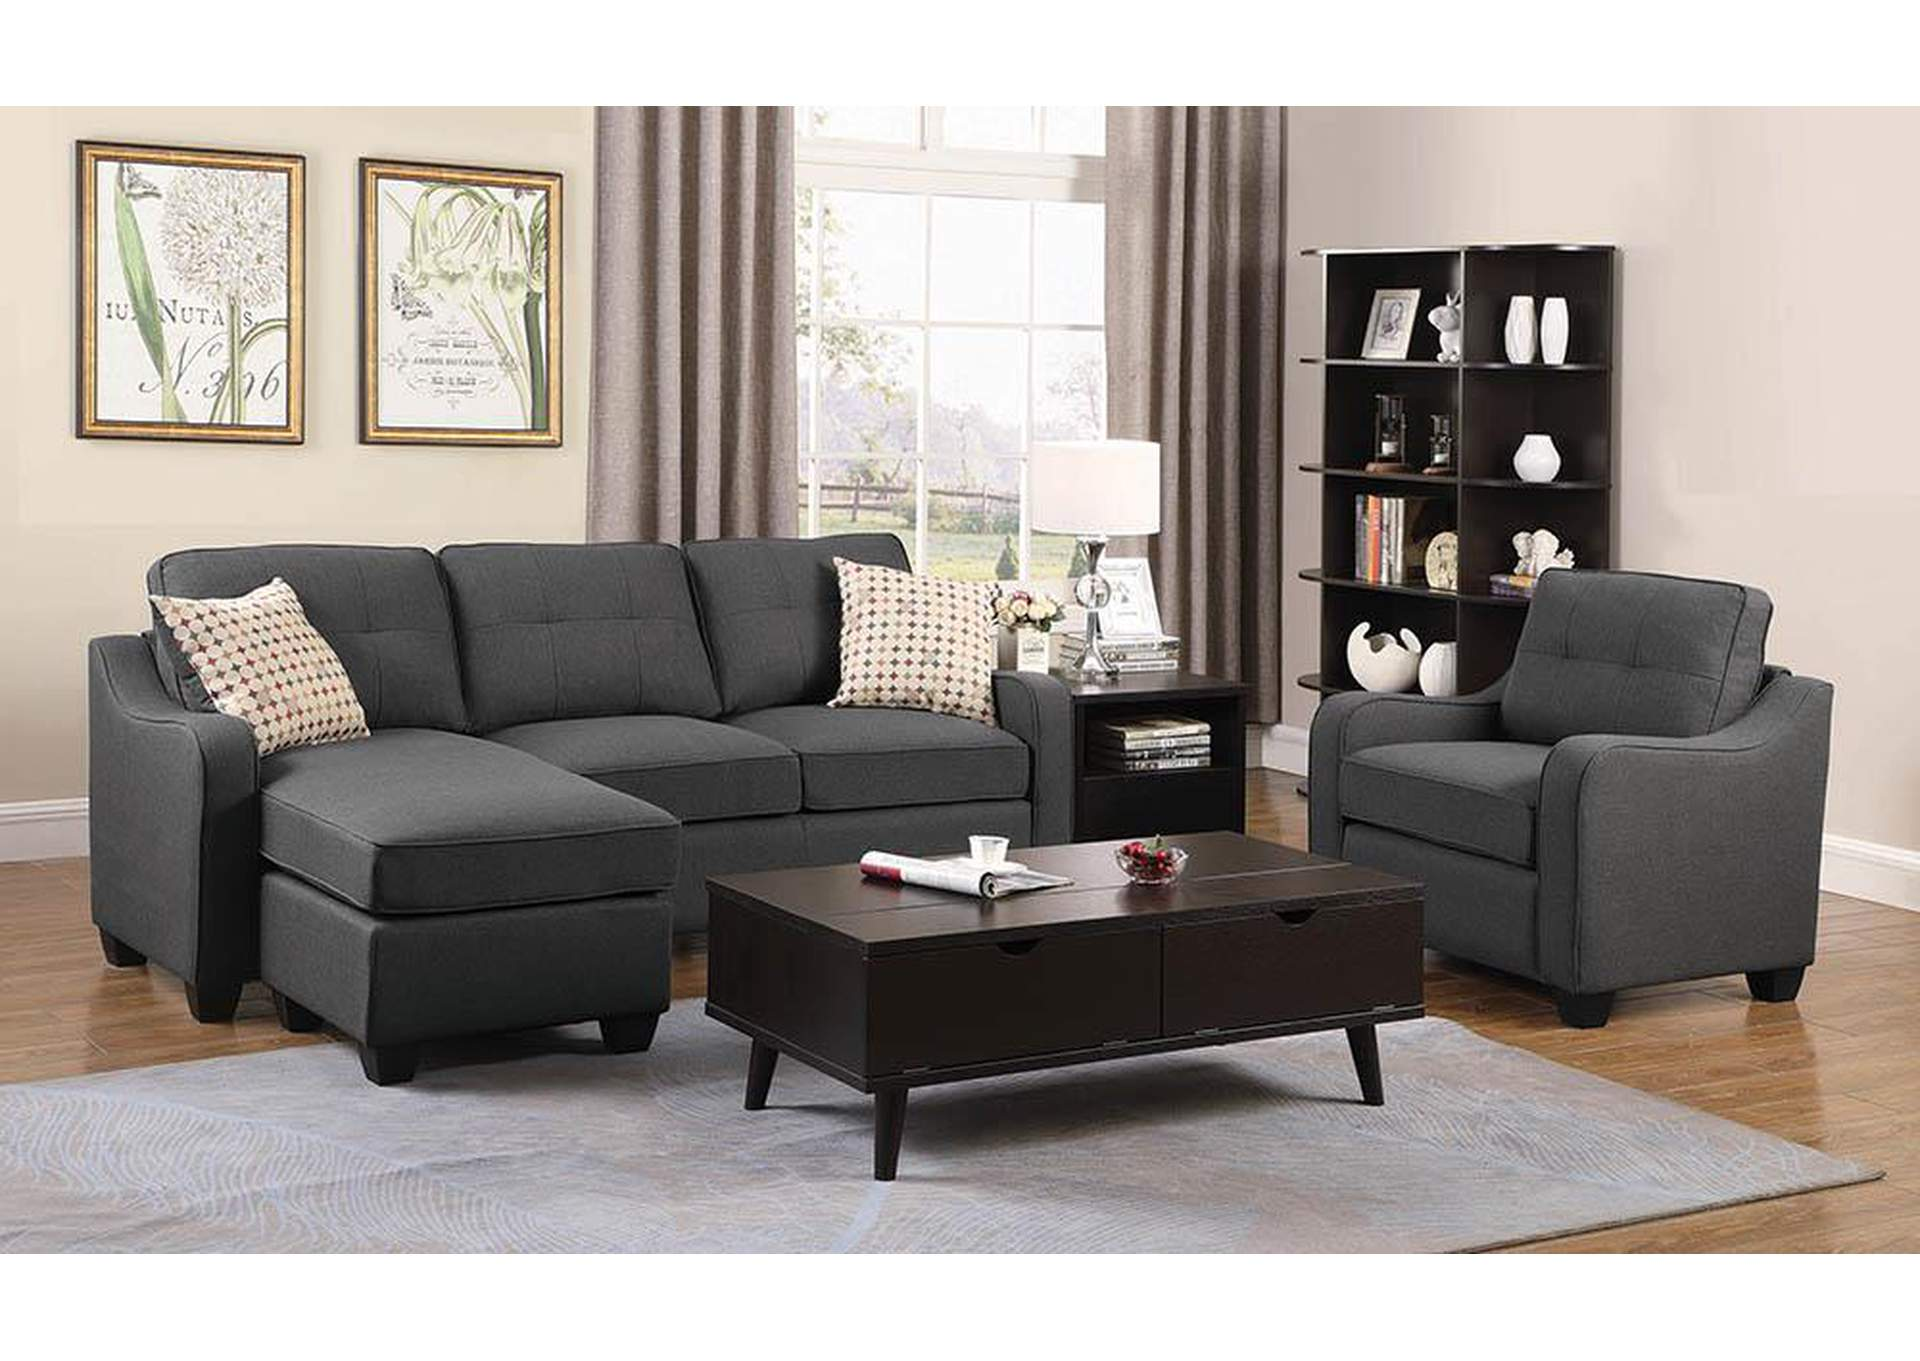 Black Reversible Sectional,Coaster Furniture